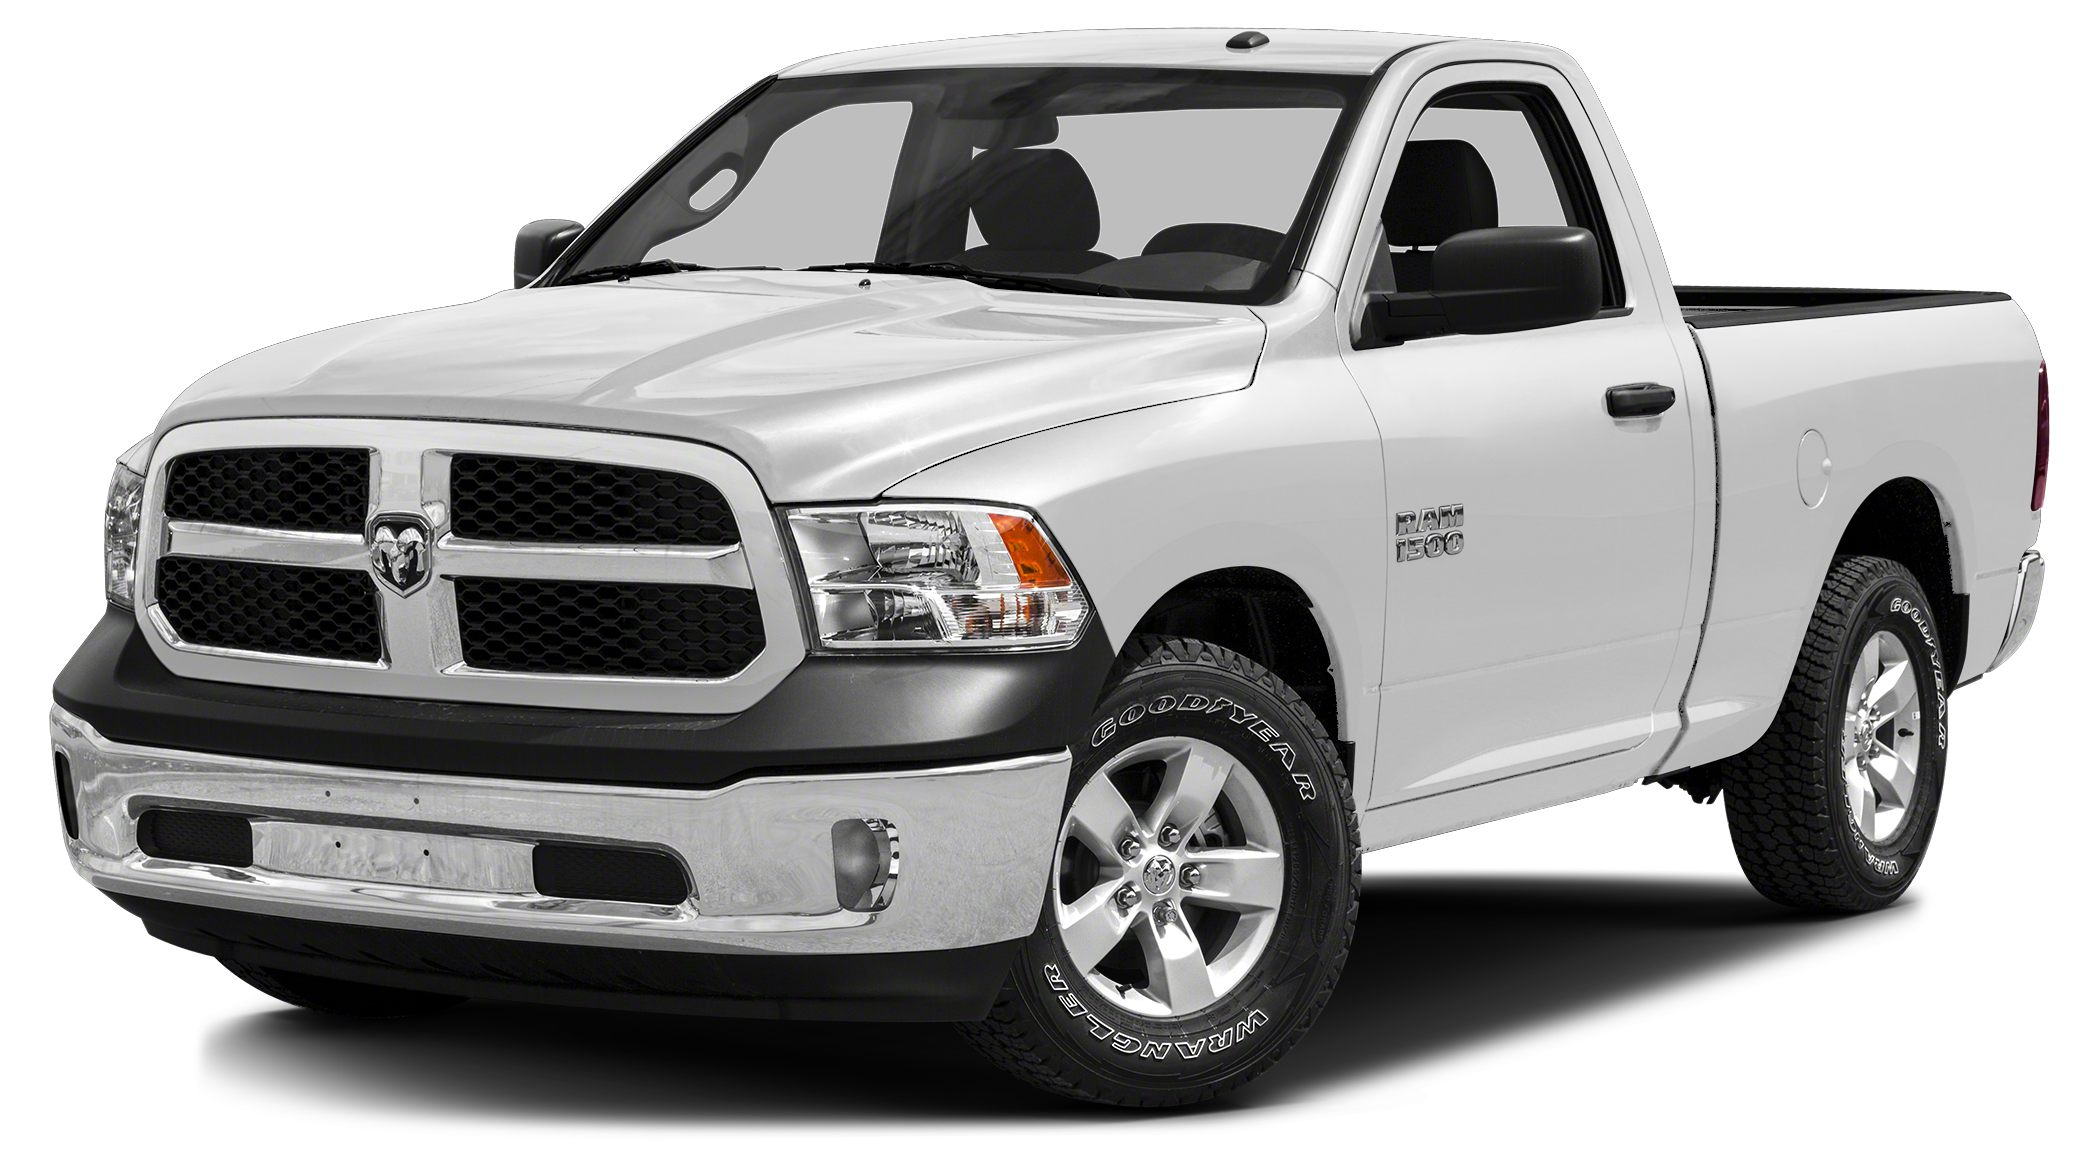 2015 RAM 1500 TradesmanExpress CARFAX 1-Owner LOW MILES - 1 EPA 25 MPG Hwy17 MPG City Trailer